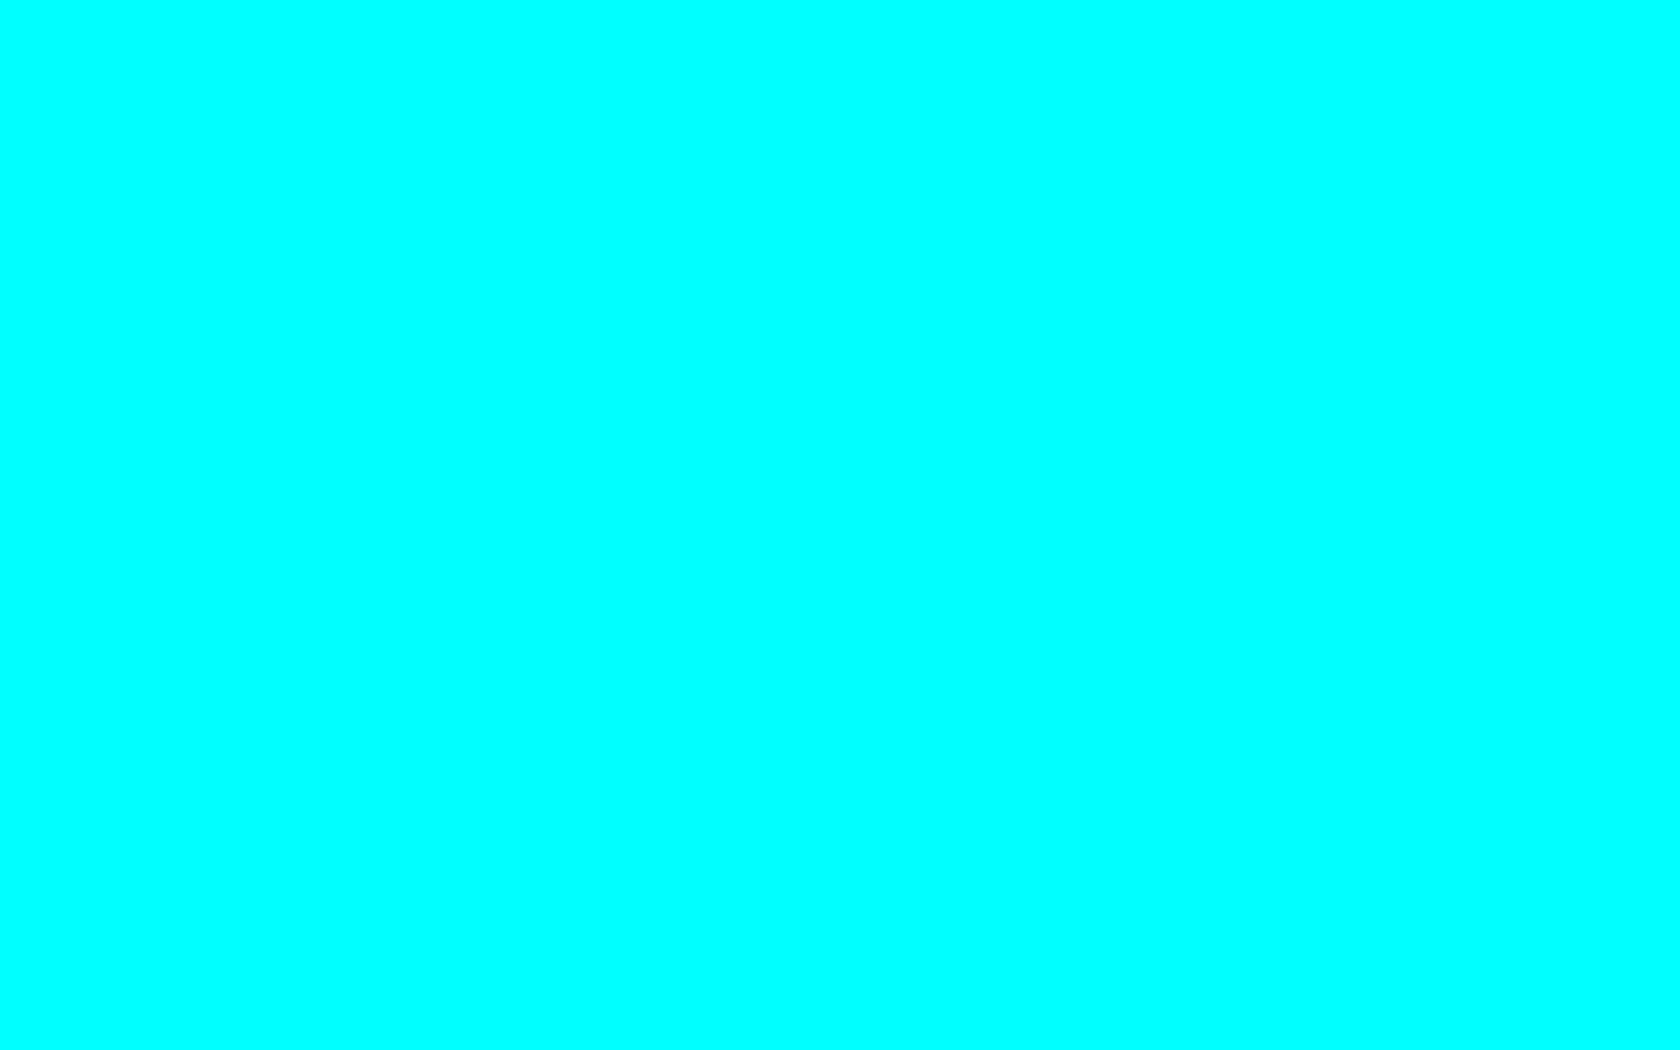 1680x1050 Cyan Solid Color Background